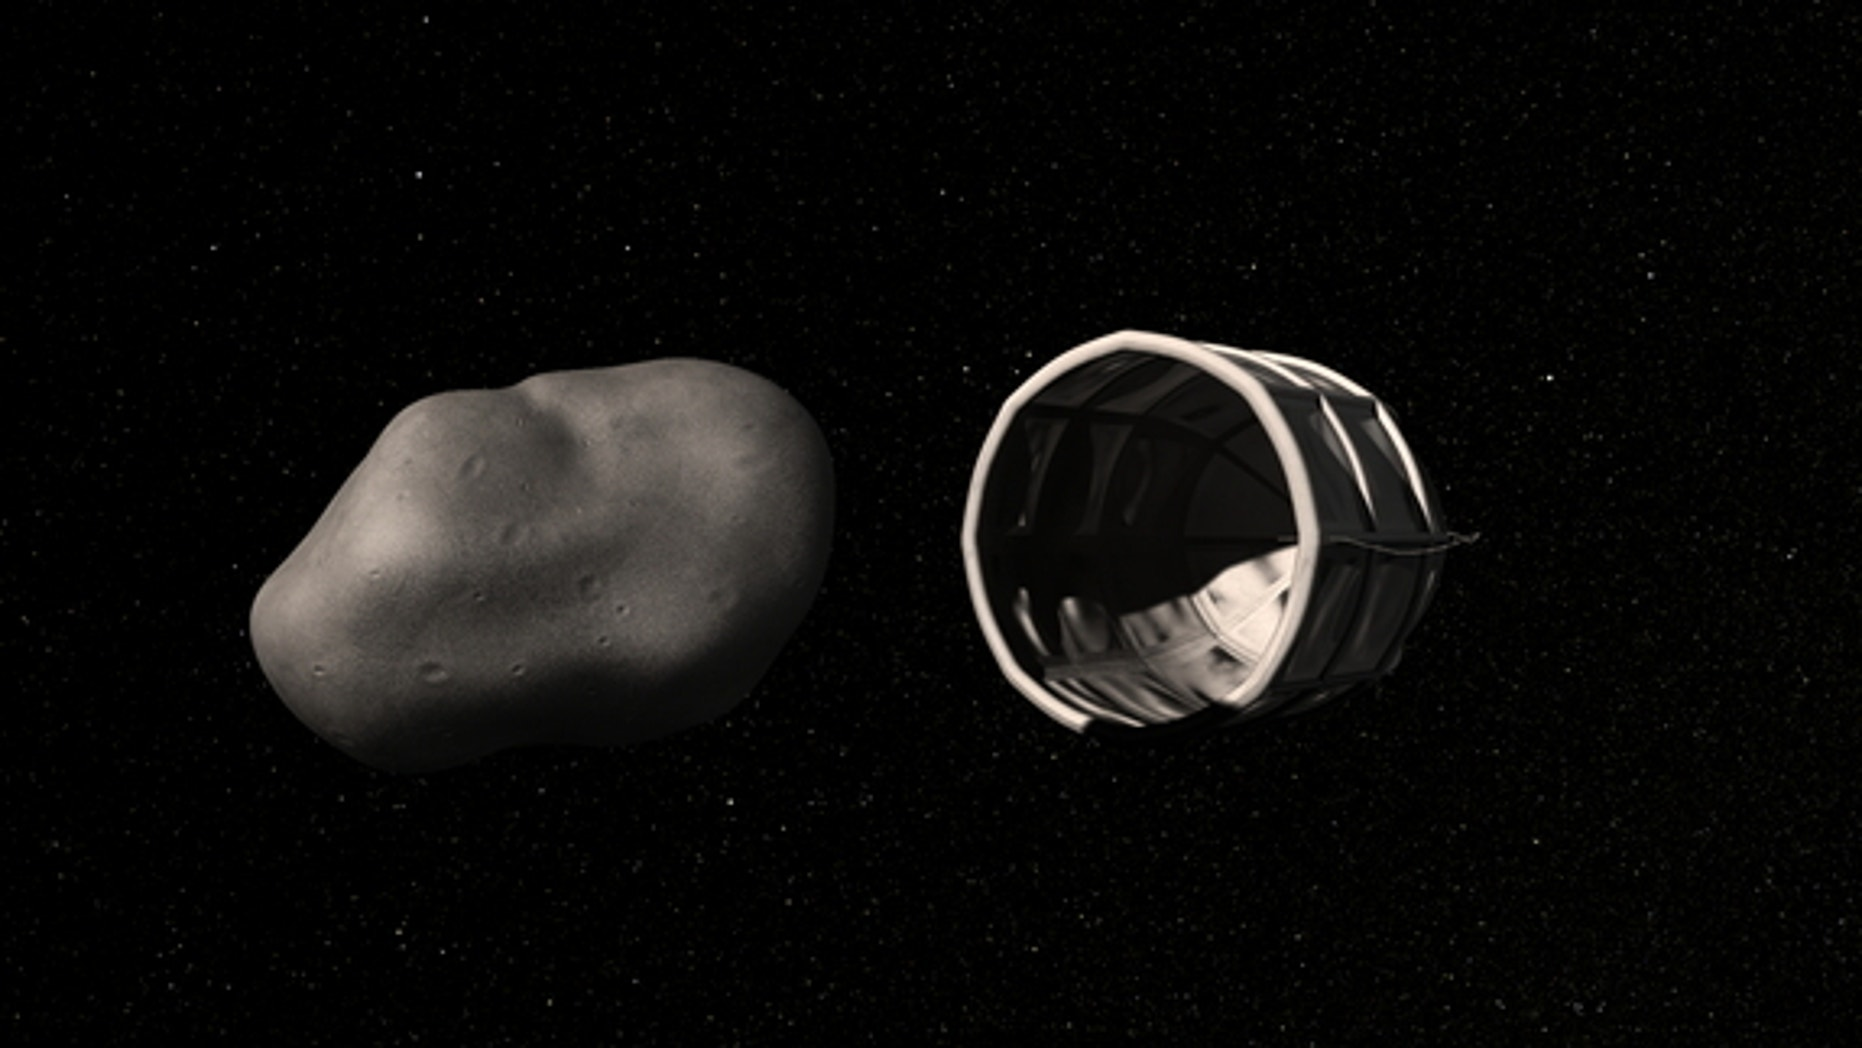 Small, water-rich near-Earth asteroids can be captured by spacecraft, allowing their resources to be extracted, officials with the new company Planetary Resources say.